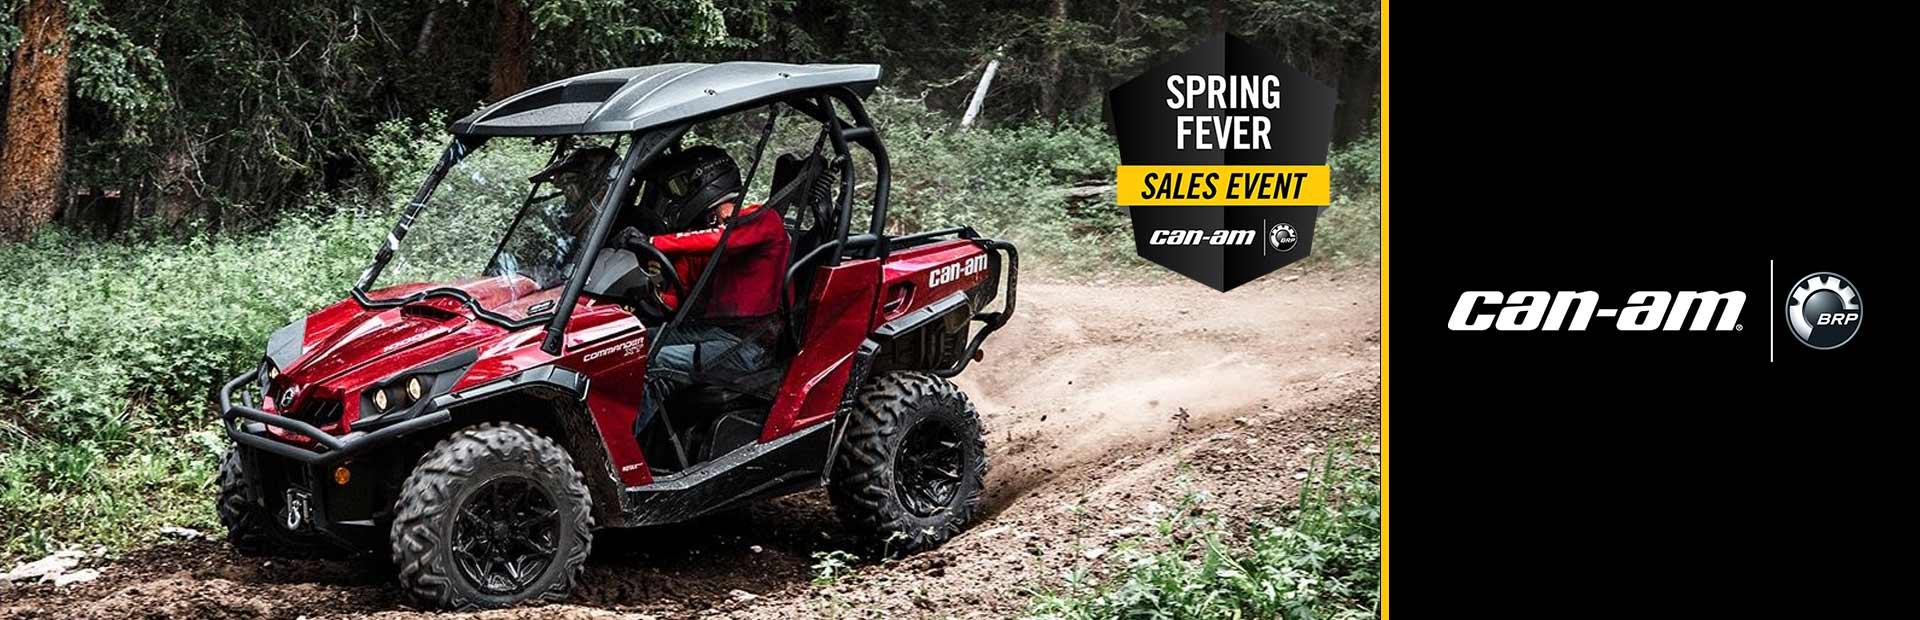 Can-Am: Spring Fever Sales Event-Commander